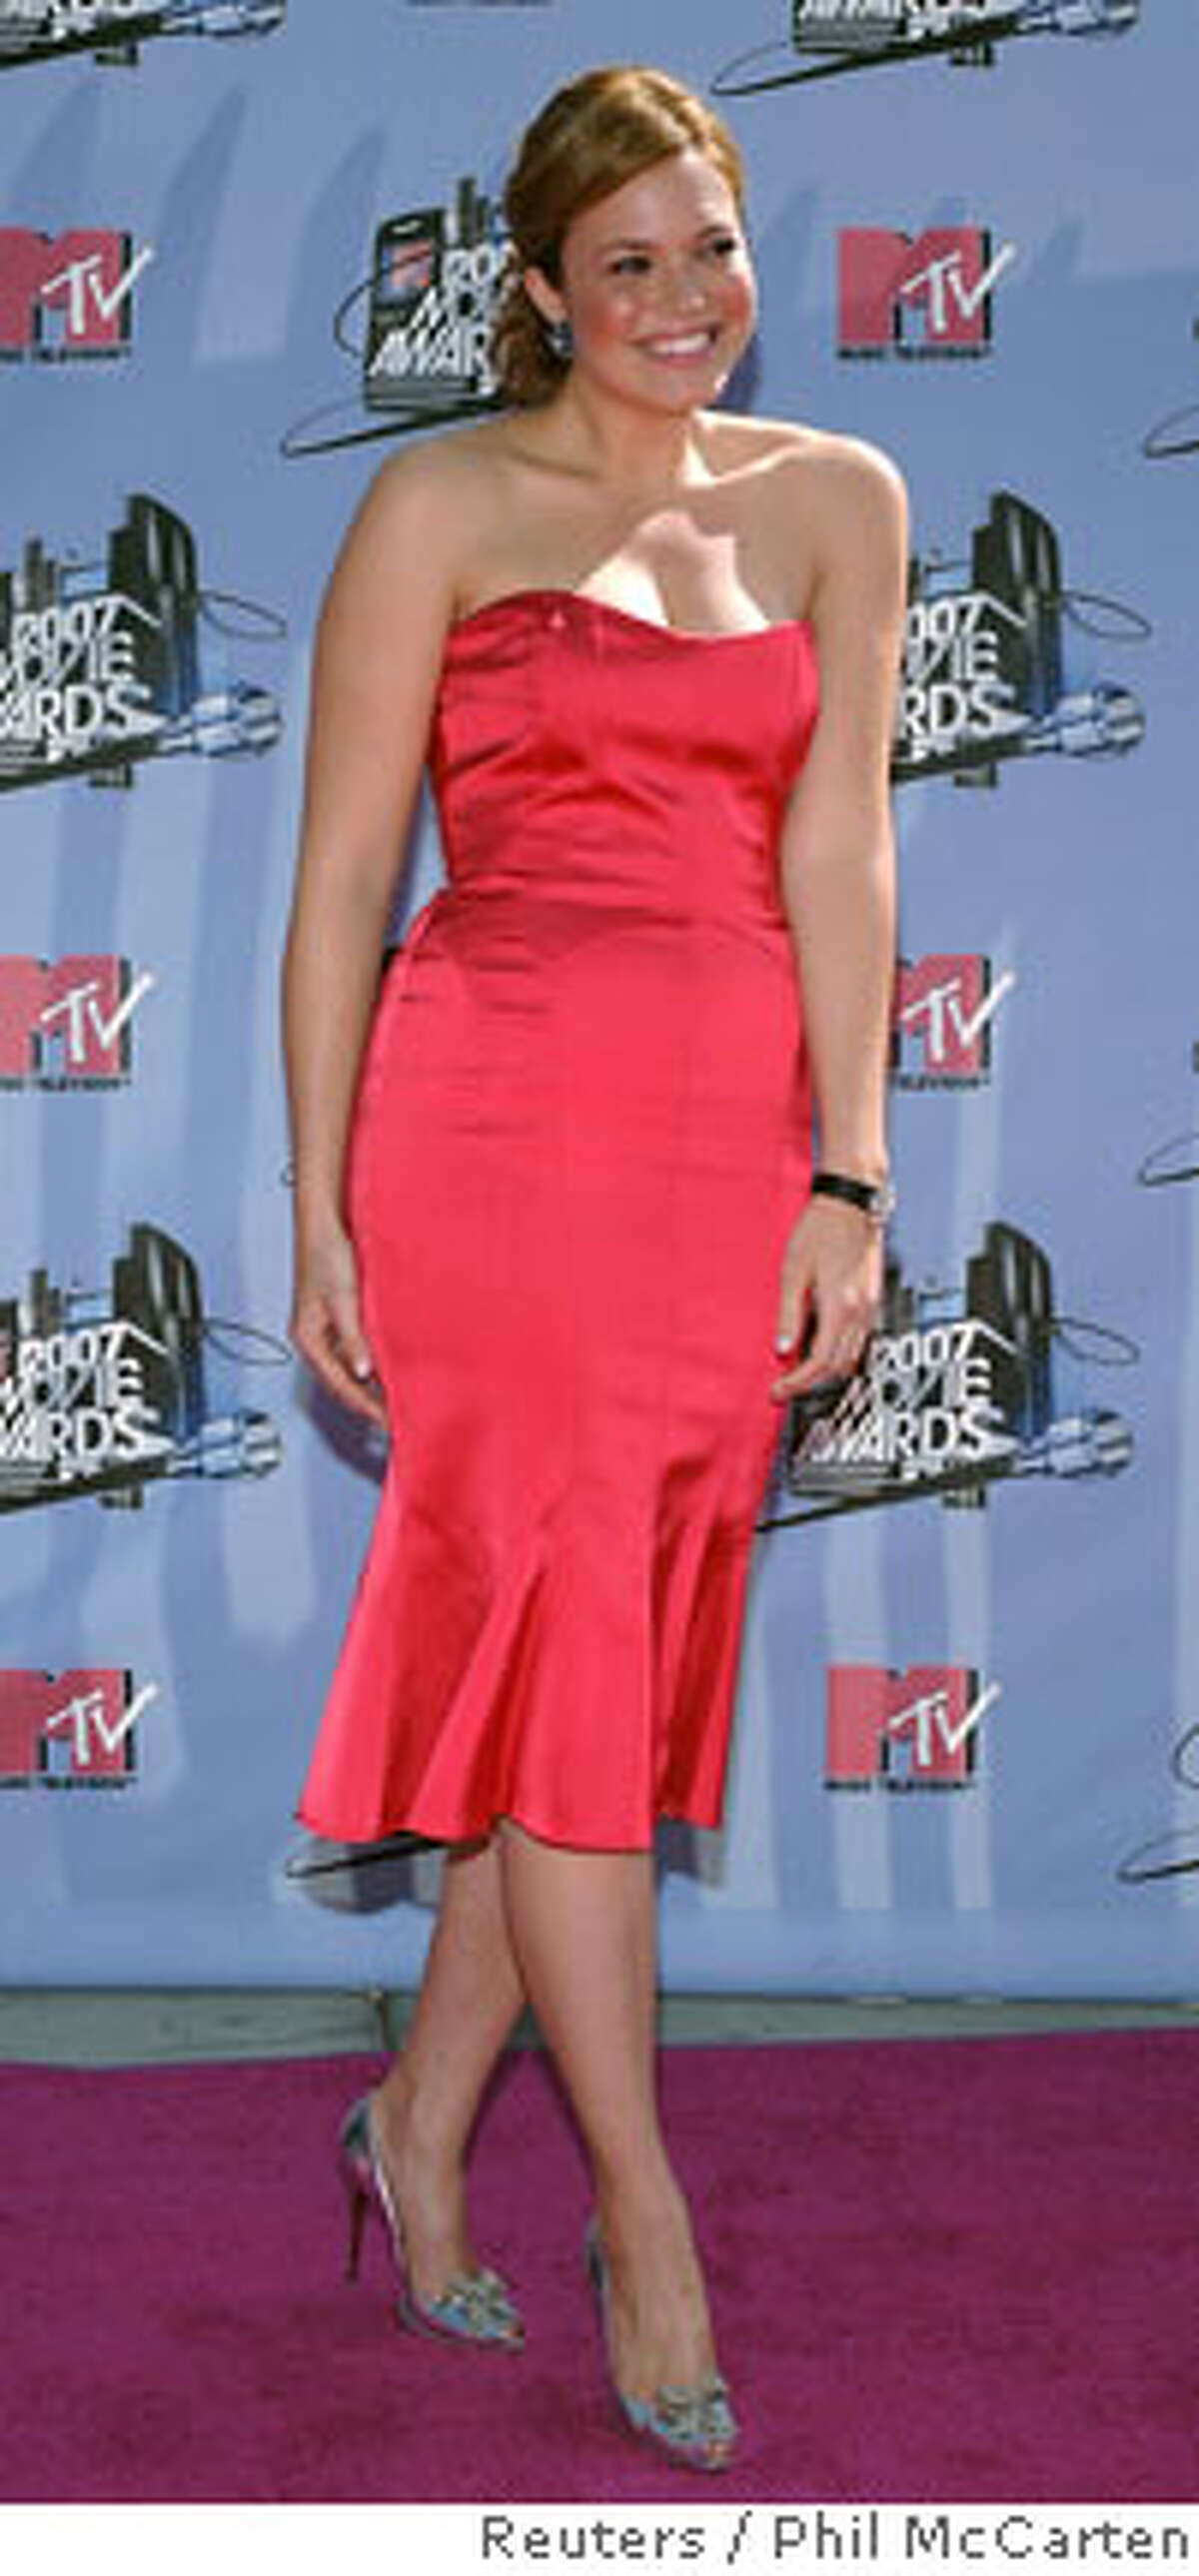 Singer Mandy Moore attends the 2007 MTV Movie Awards in Los Angeles, California June 3, 2007. REUTERS/Phil McCarten (UNITED STATES) Ran on: 06-24-2007 Pop singer and actress Mandy Moore at the MTV Movie Awards in Los Angeles on June 3.